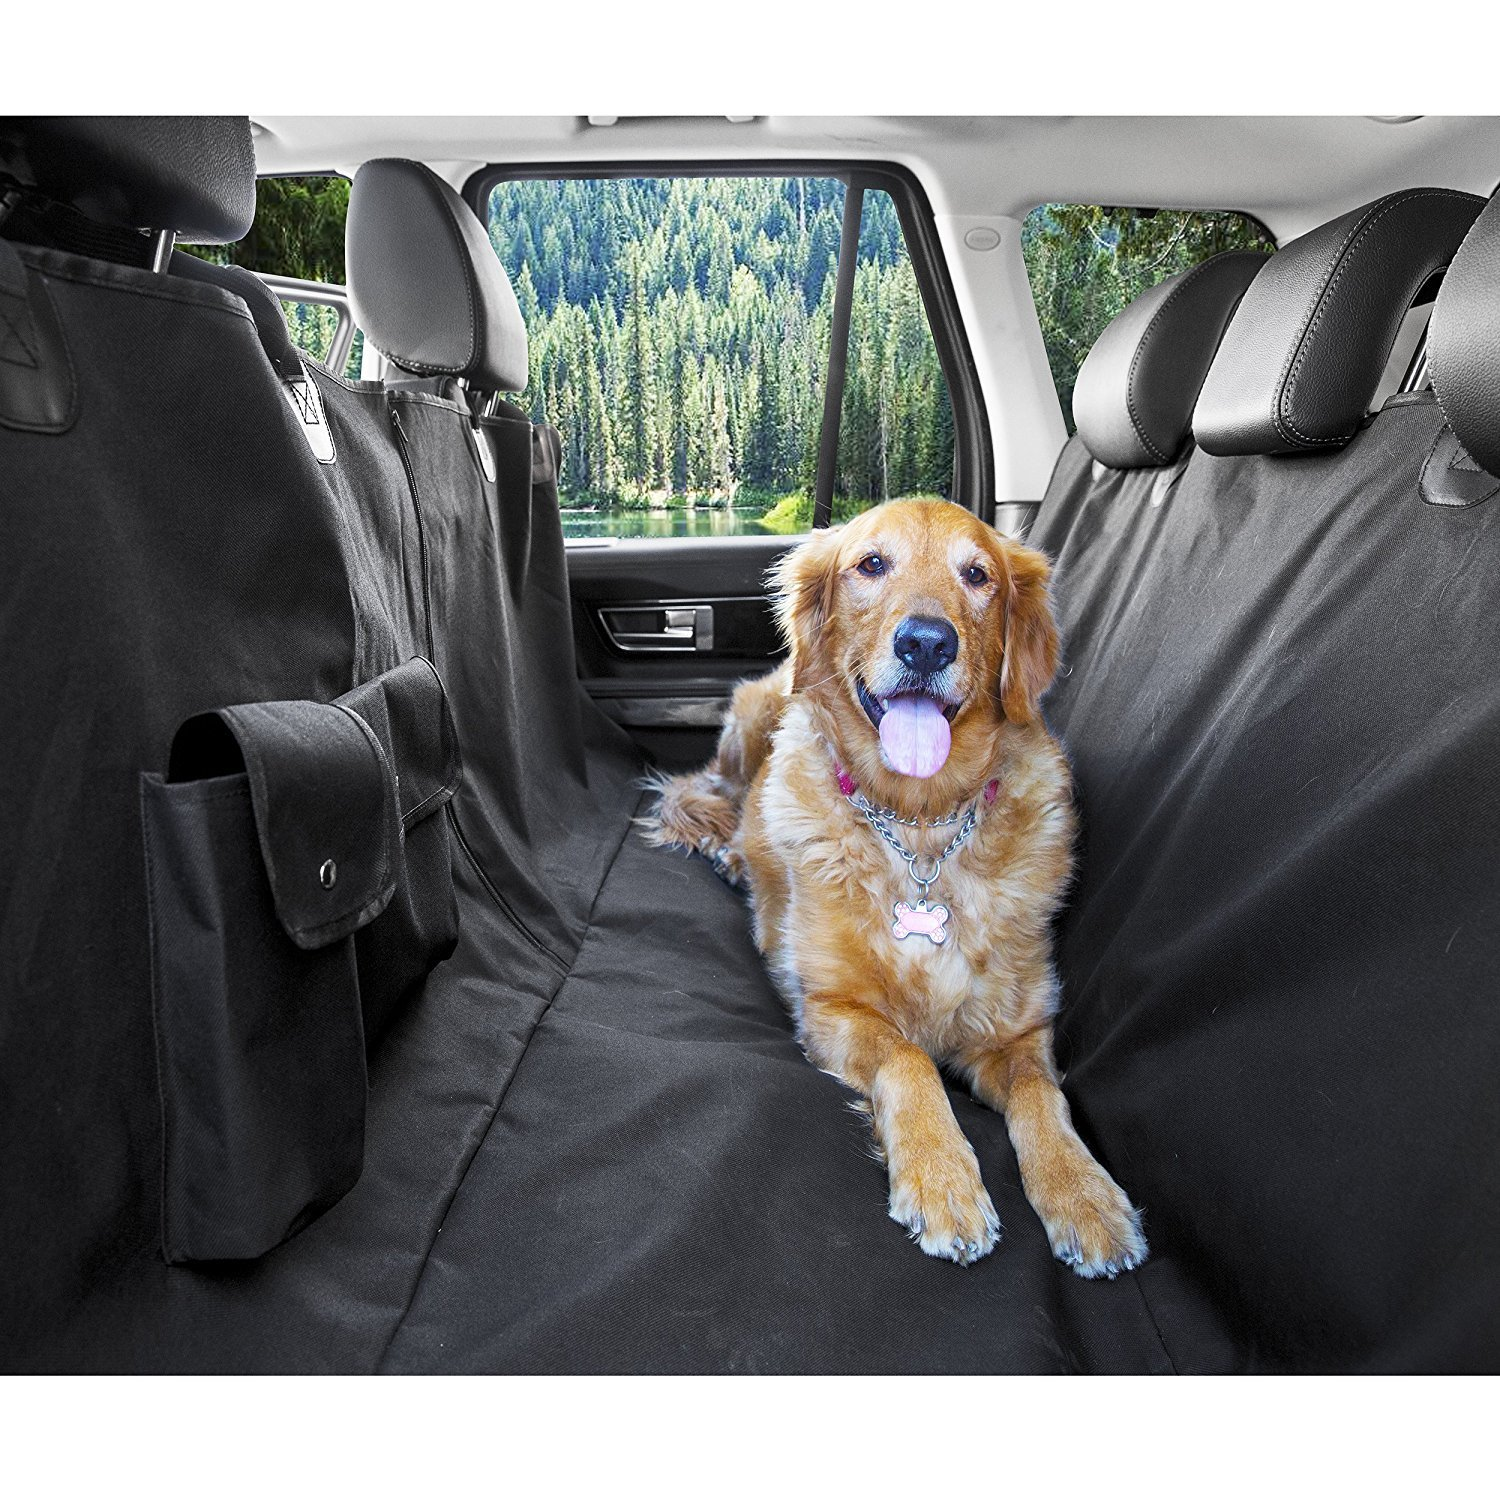 slip cover mat dog non hammock rear waterproof protect car product cat pet seat back